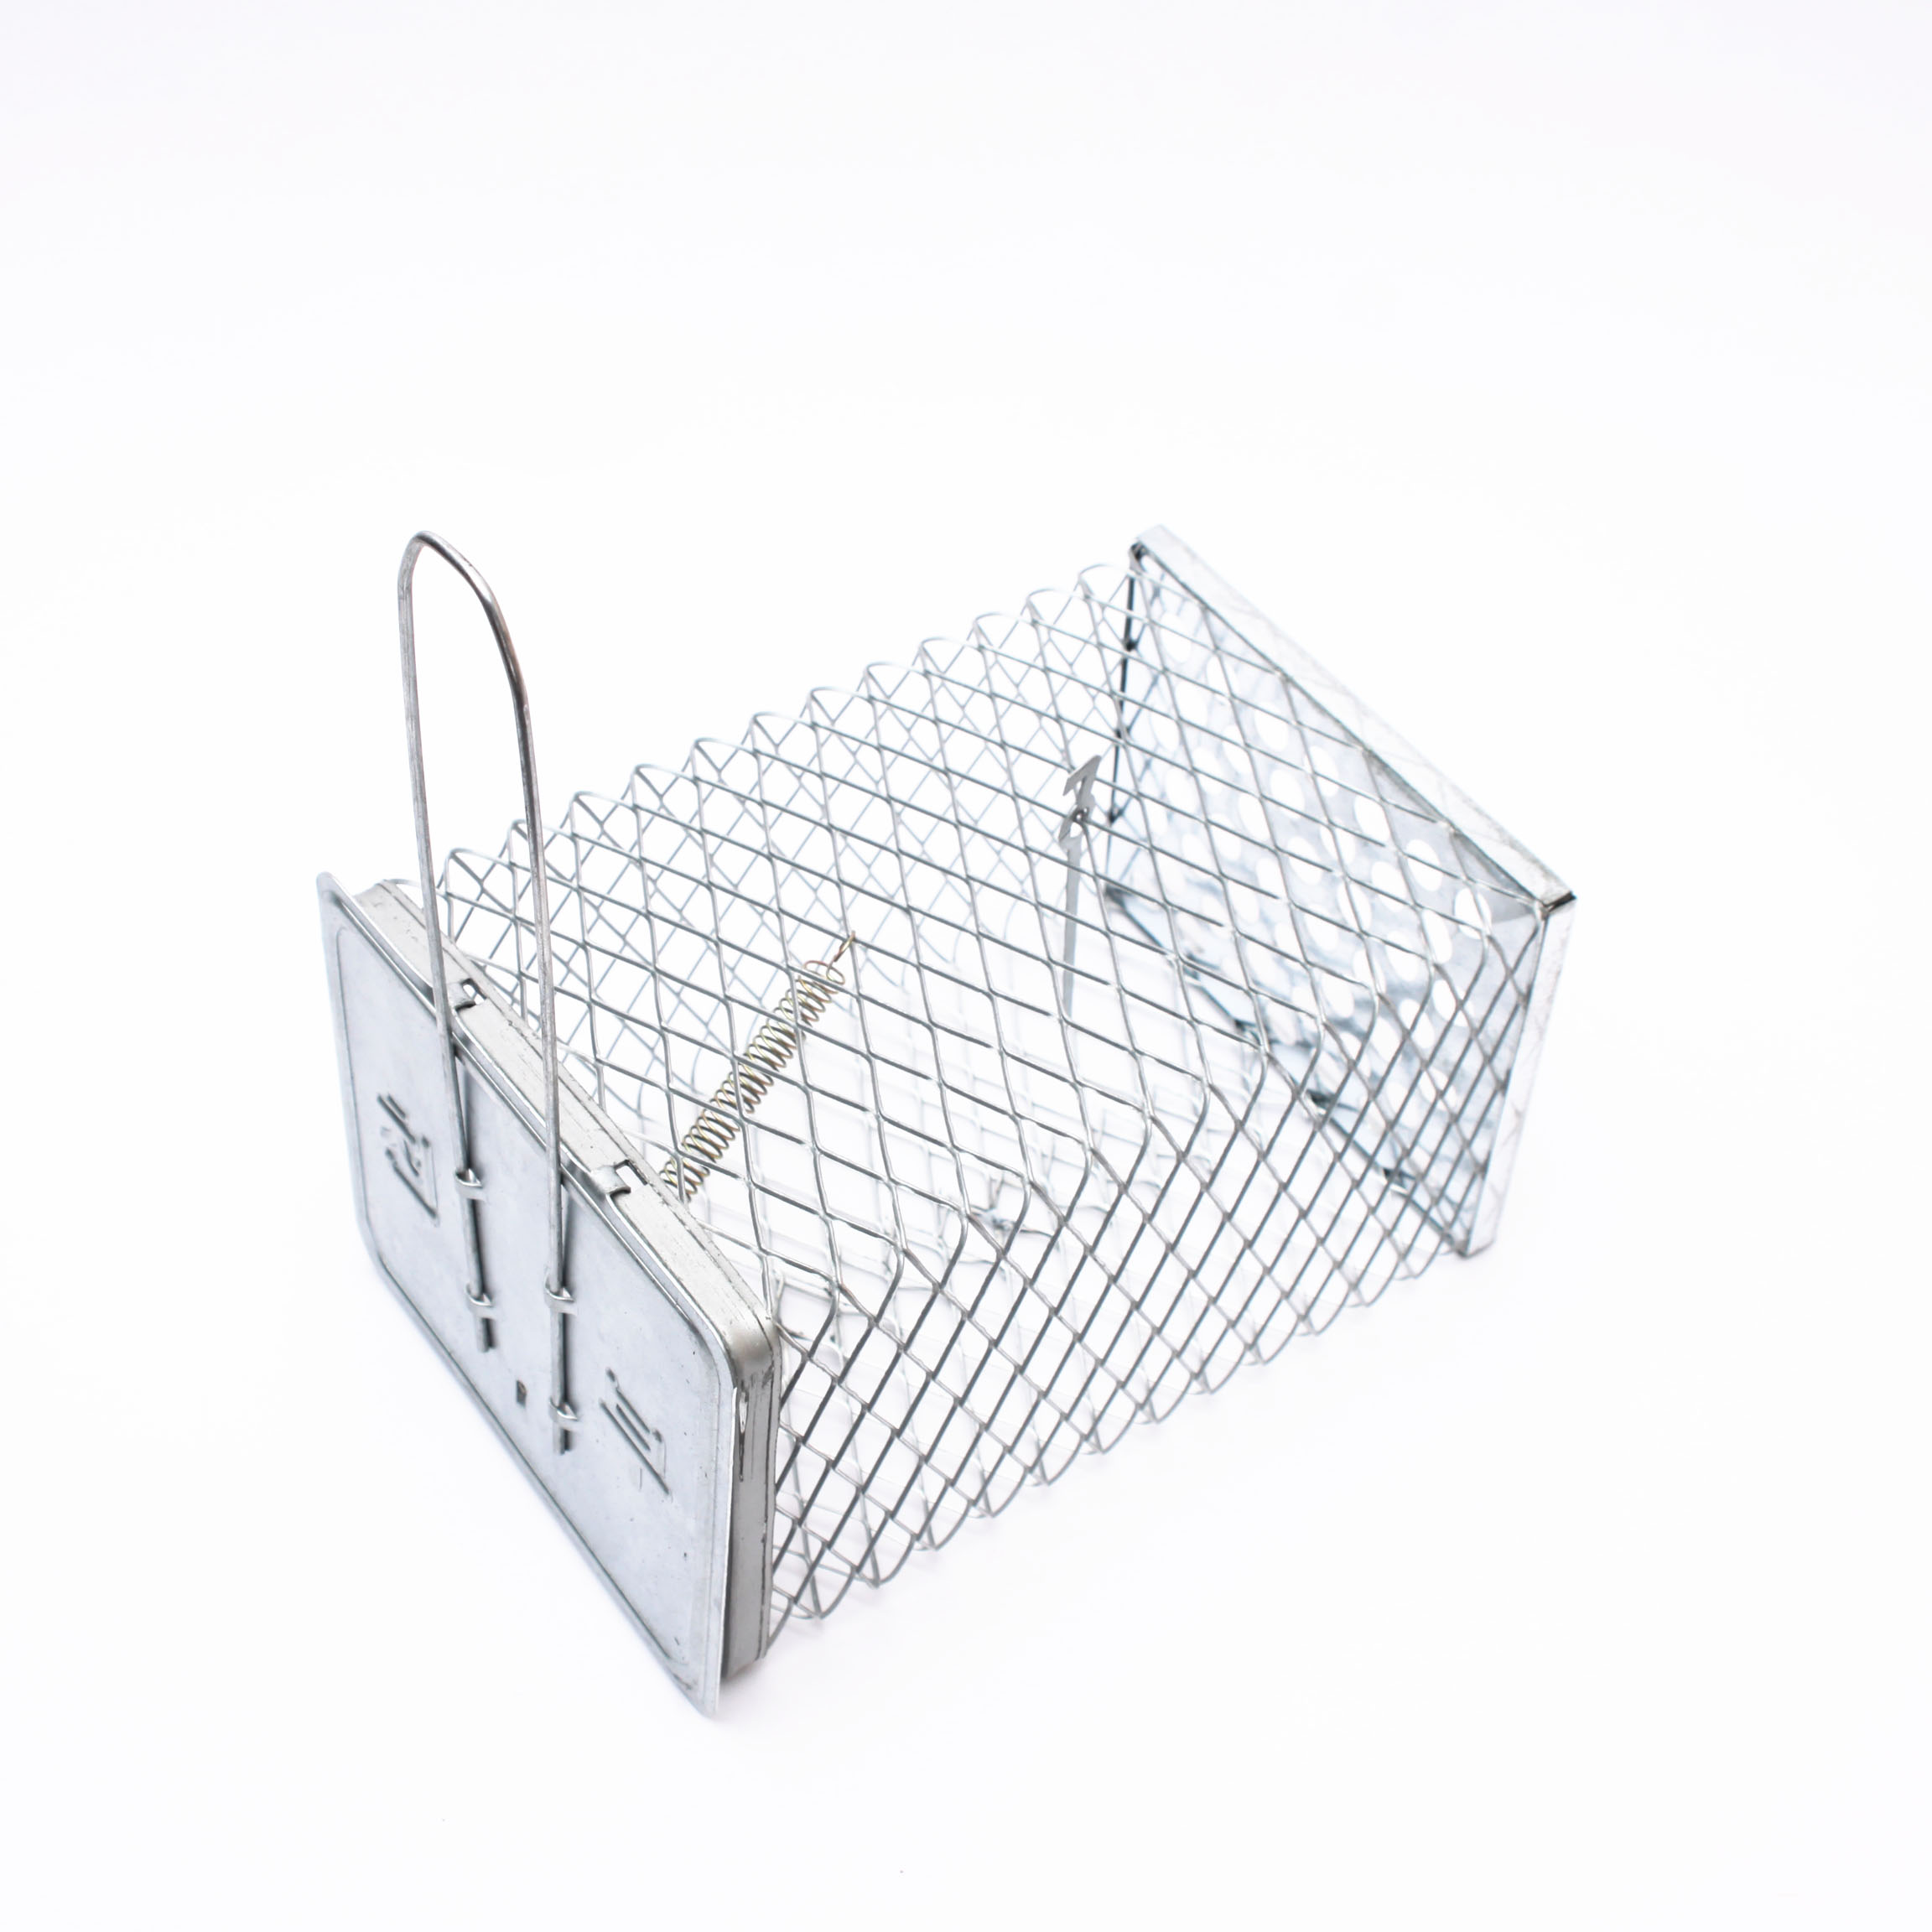 2304x2304 Small Animal Live Capture Mouse Trap Cage Box Alive Mole Rodent